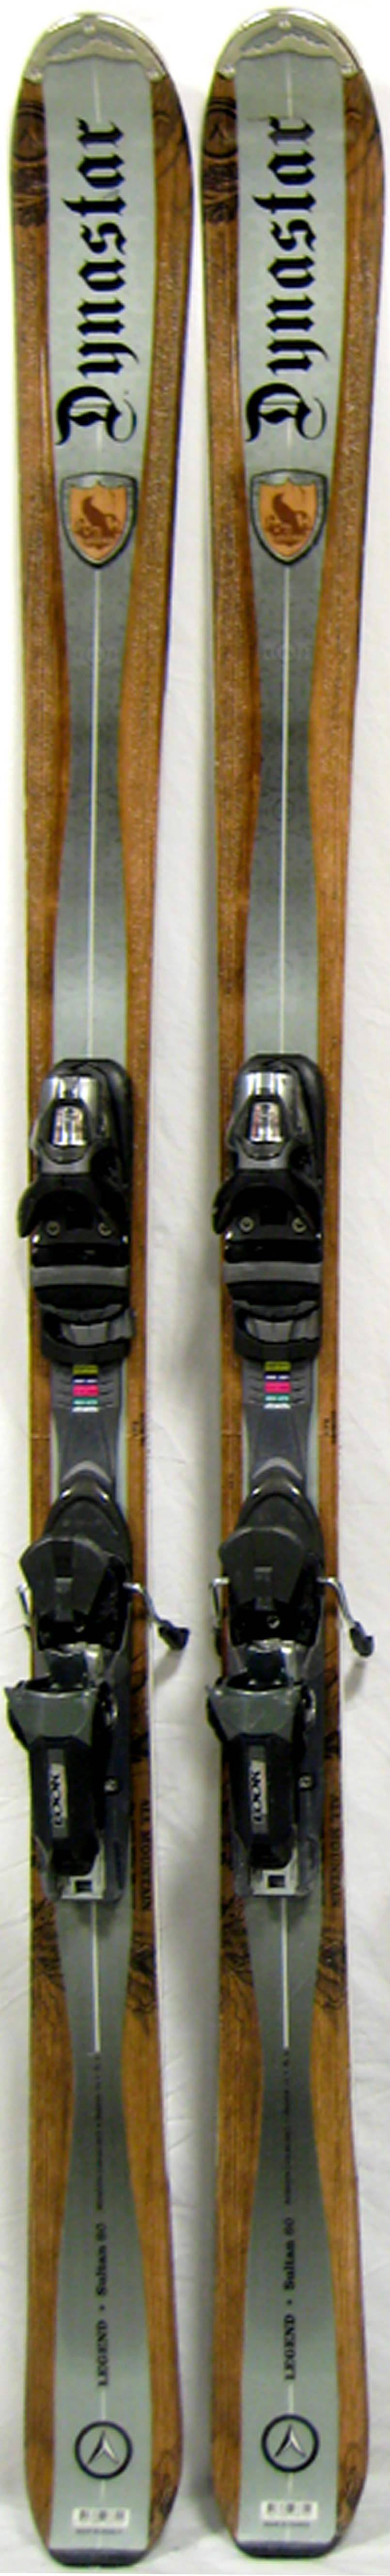 Topsheets of 2011 Dynastar Sultan 80 Skis For Sale